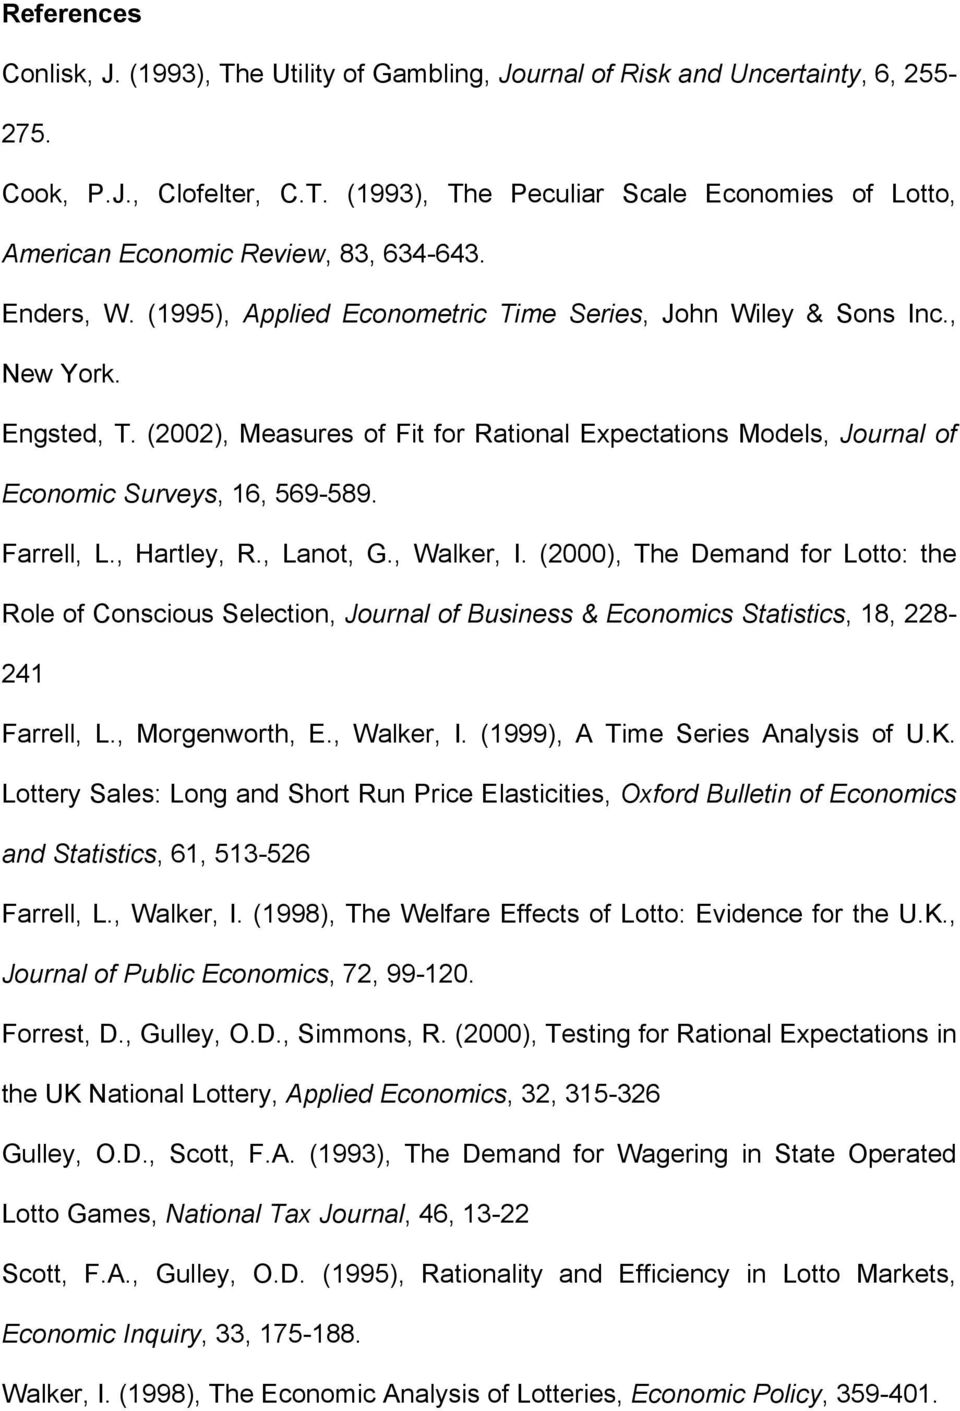 Farrell, L., Harley, R., Lano, G., Walker, I. (2000), The Demand for Loo: he Role of Conscious Selecion, Journal of Business & Economics Saisics, 18, 228-241 Farrell, L., Morgenworh, E., Walker, I. (1999), A Time Series Analysis of U.